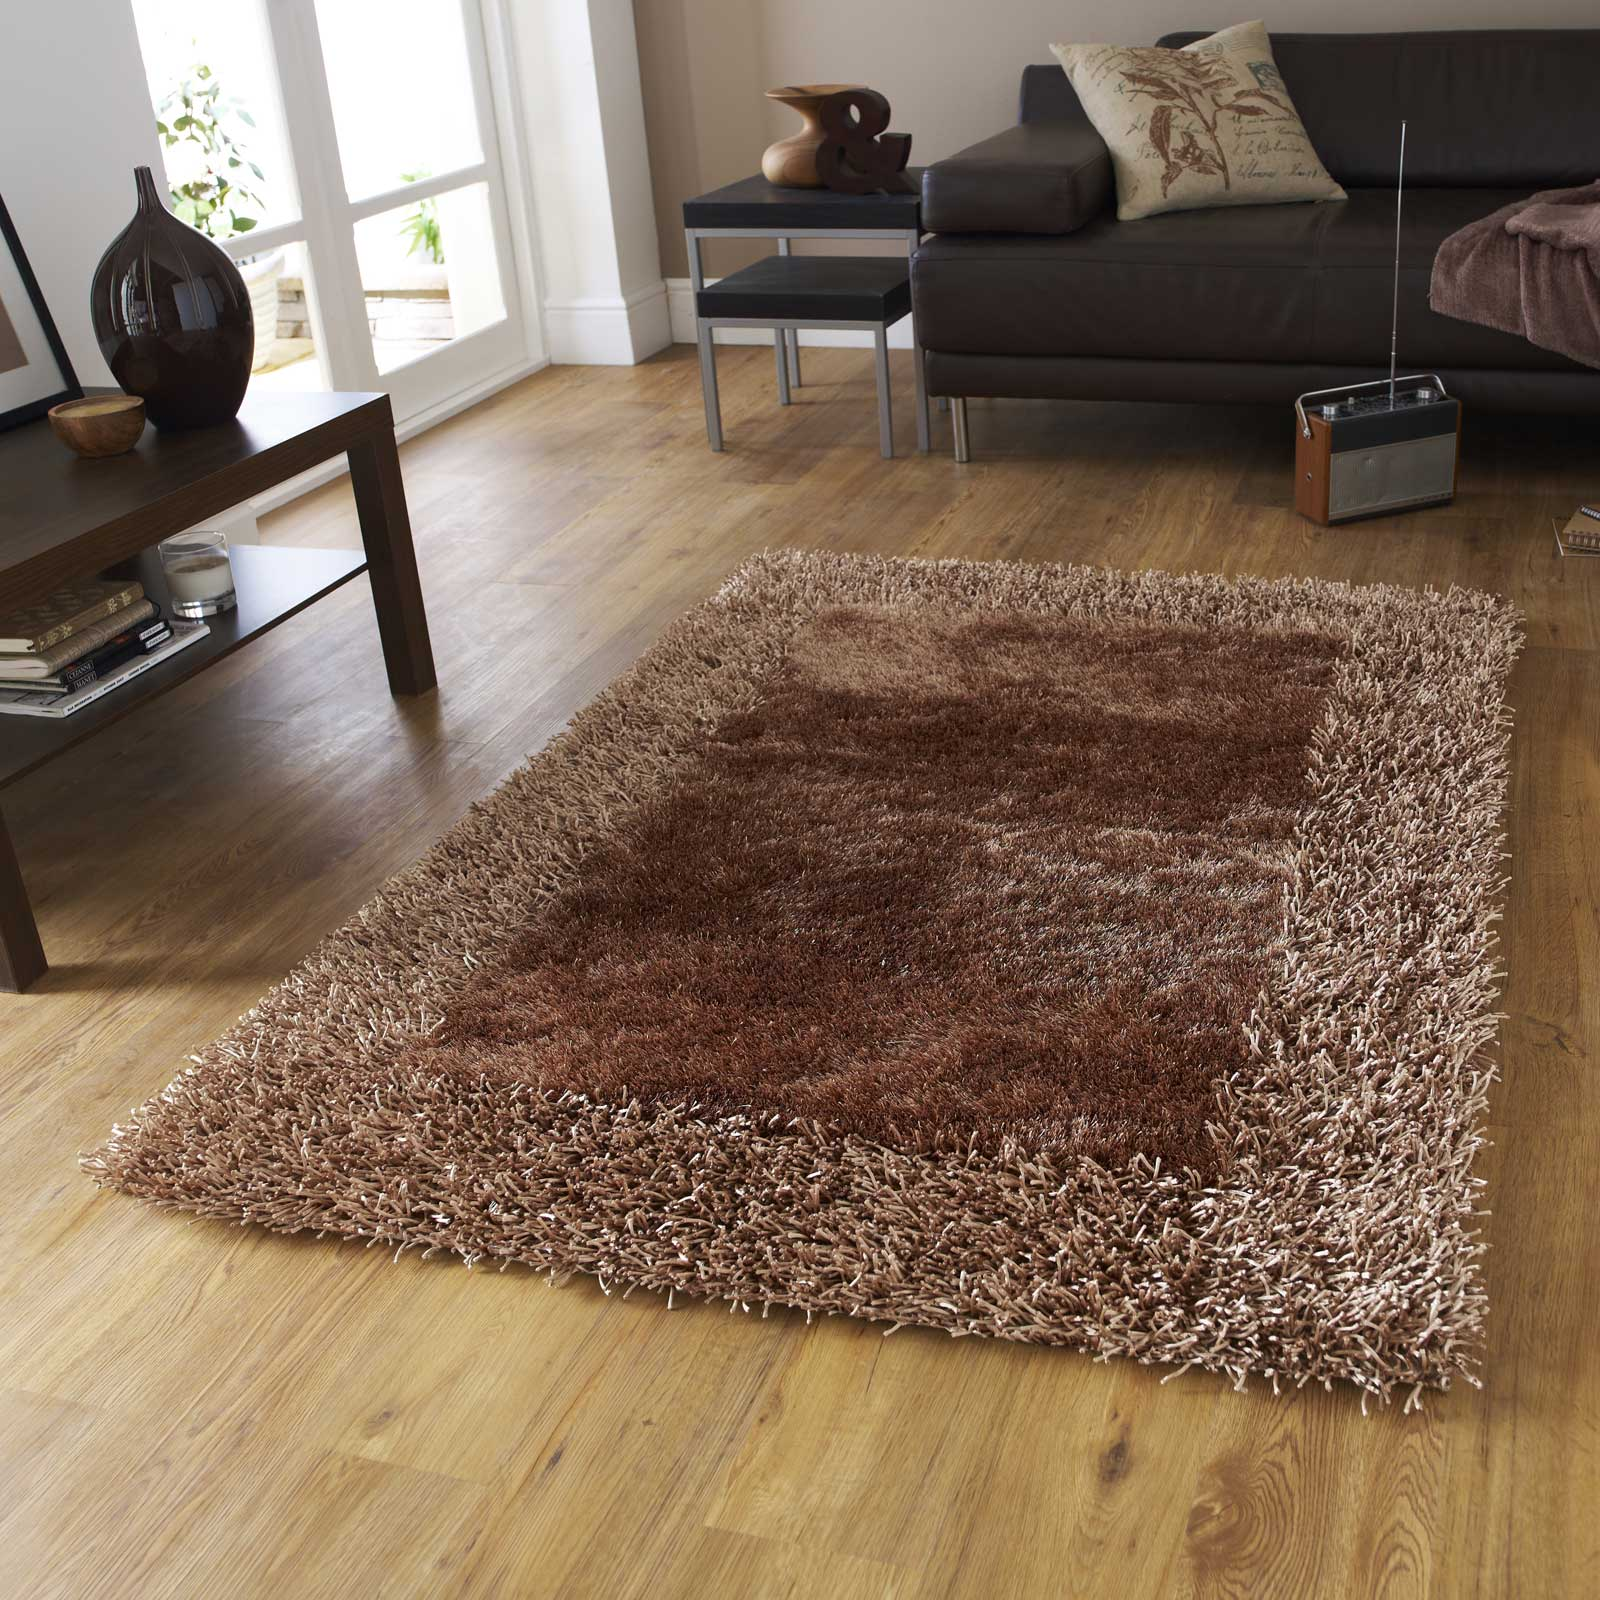 Sable Two Shiney Shaggy Rugs in Beige